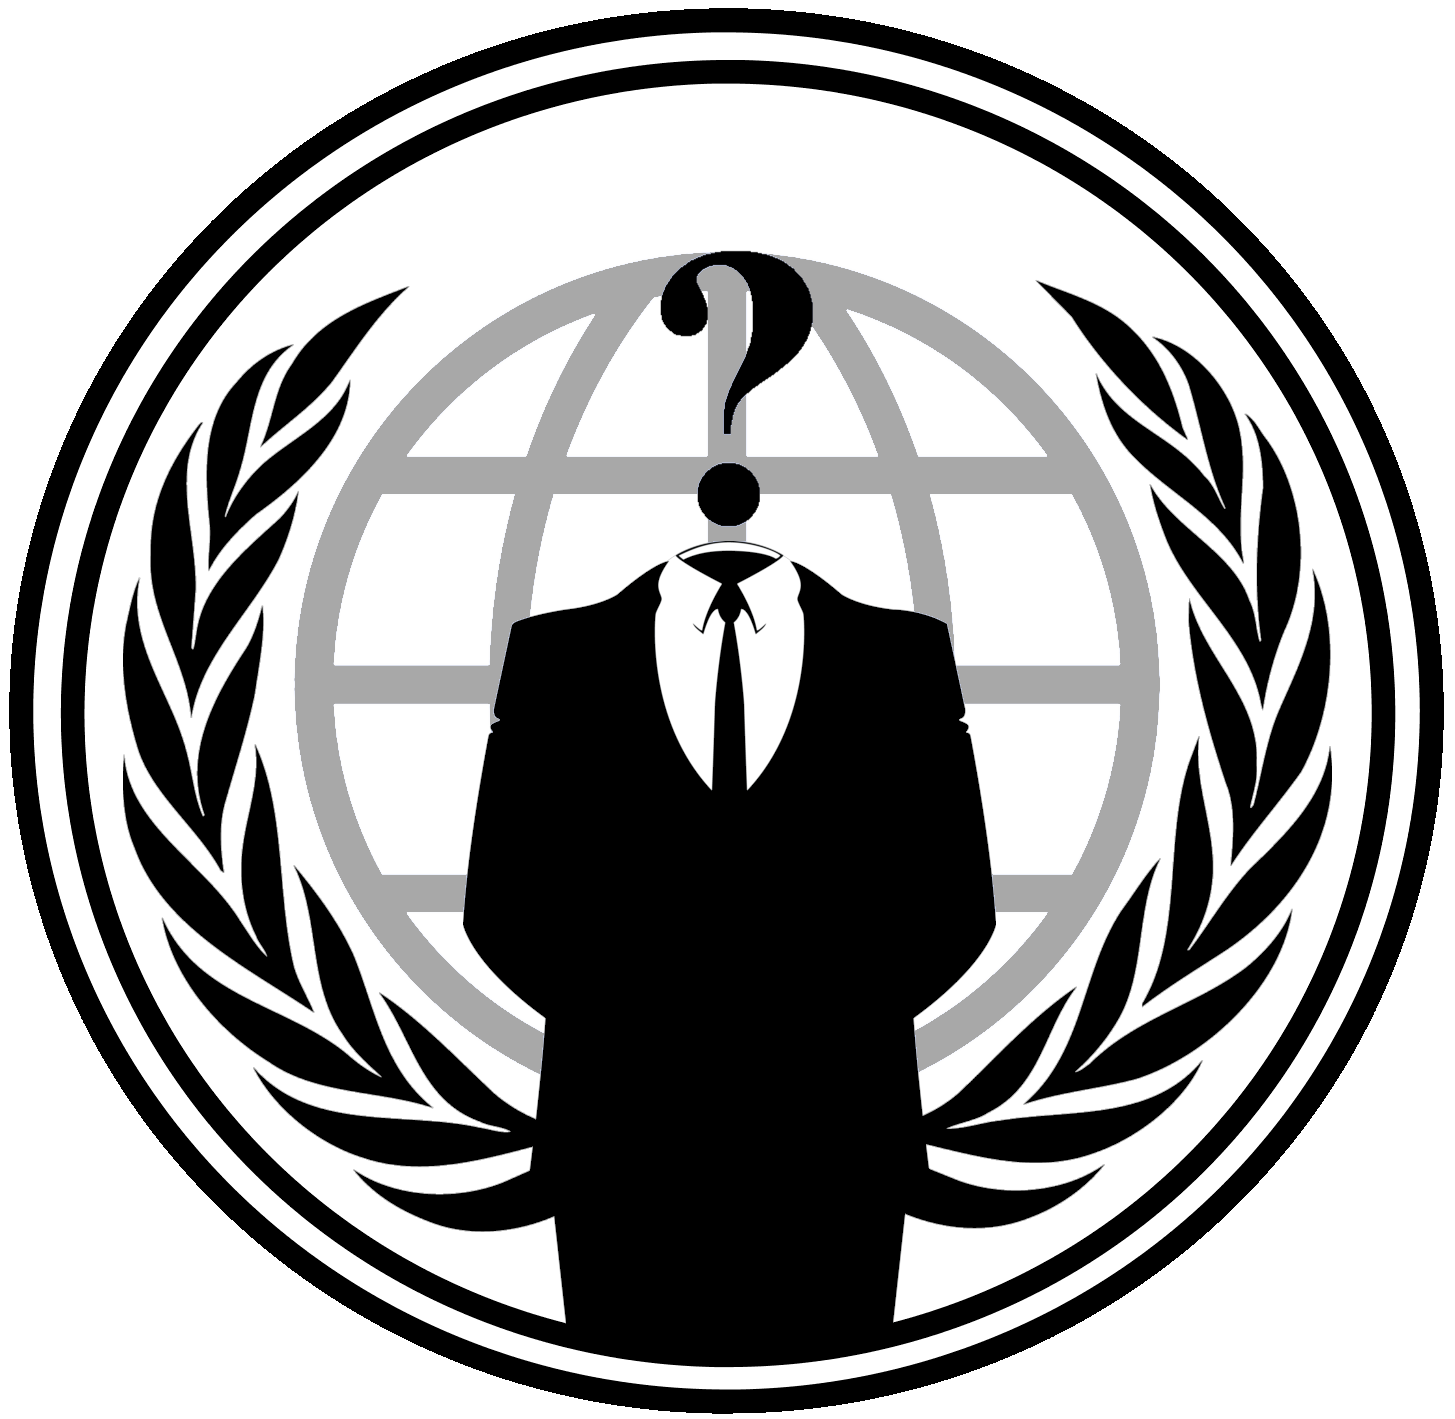 Anonymous render png. Image logo by viperaviator